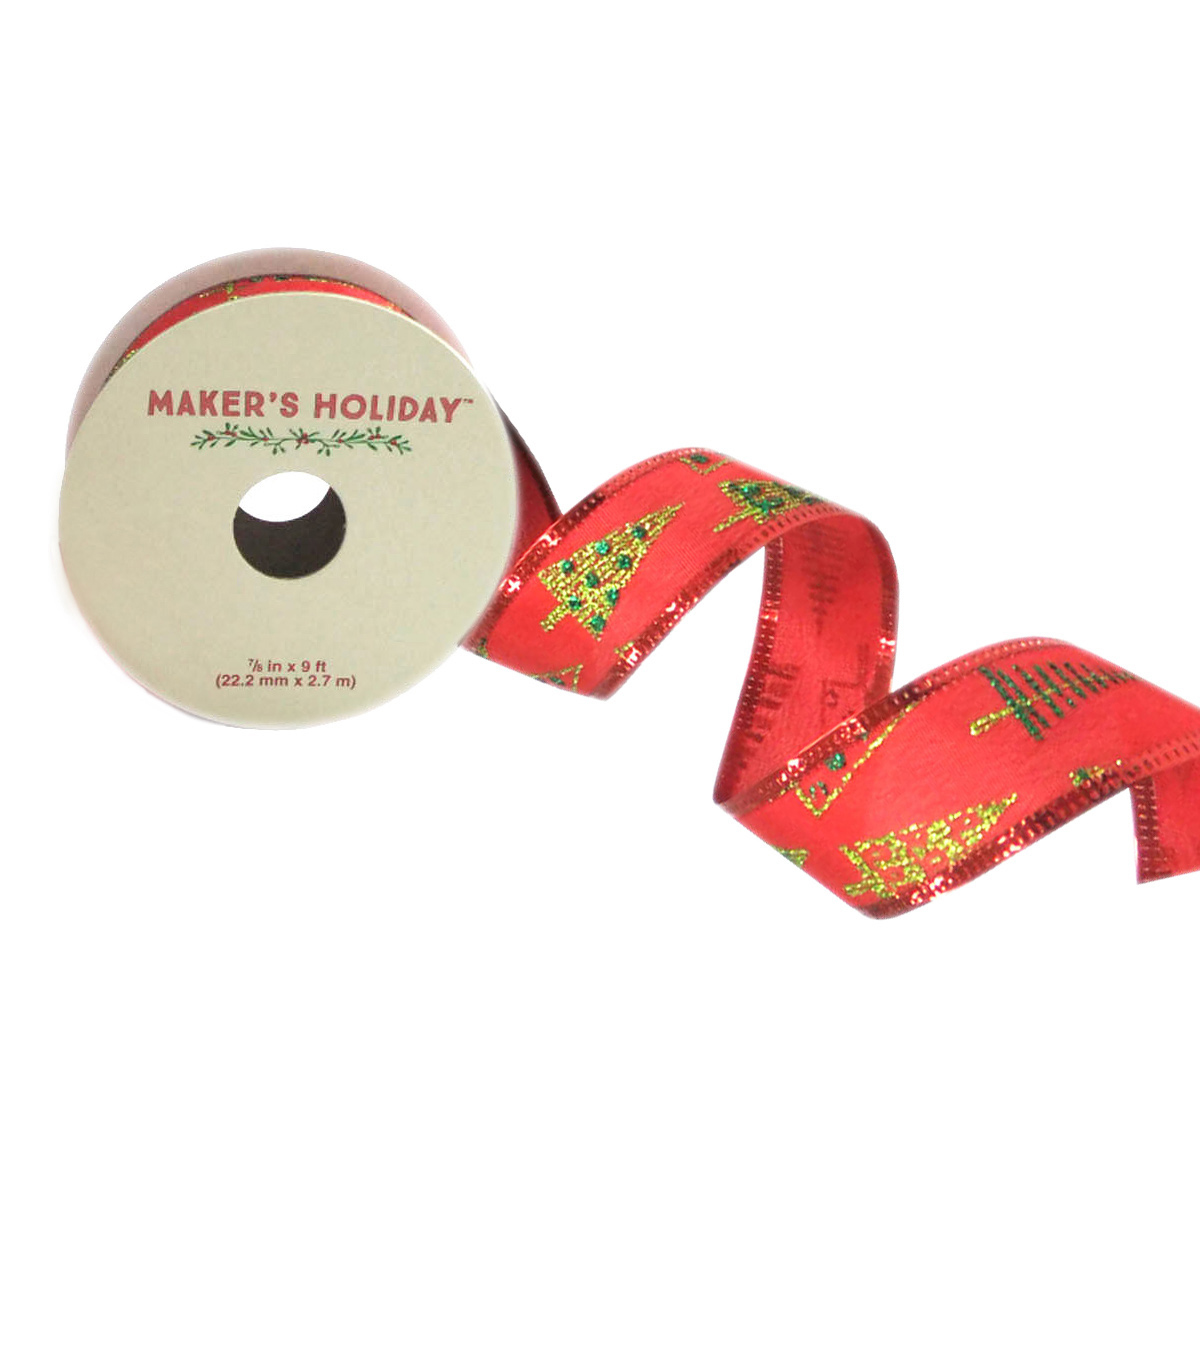 Maker's Holiday 7/8'' X 9' Ribbon-Christmas Tree